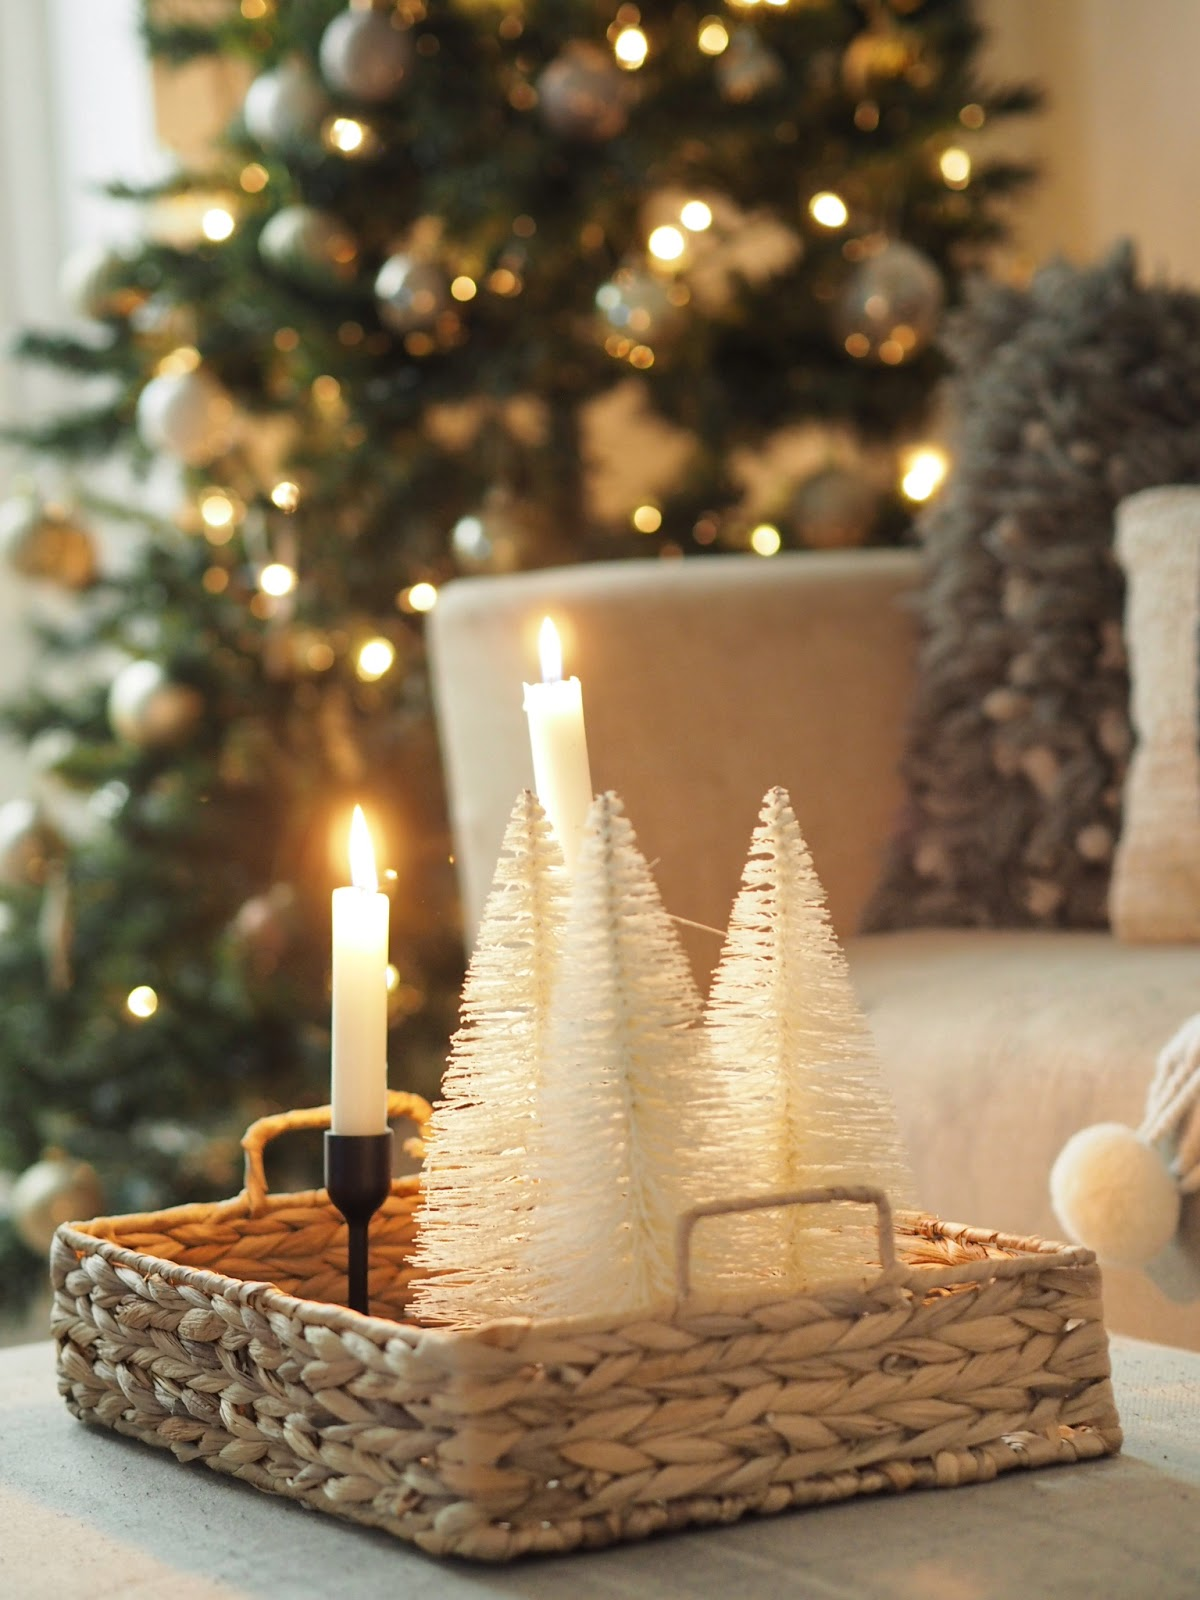 Christmas home interior inspiration in this small home christmas tour. How to style your home for christmas this year on a budget, with lots of decorations re-used from previous years.